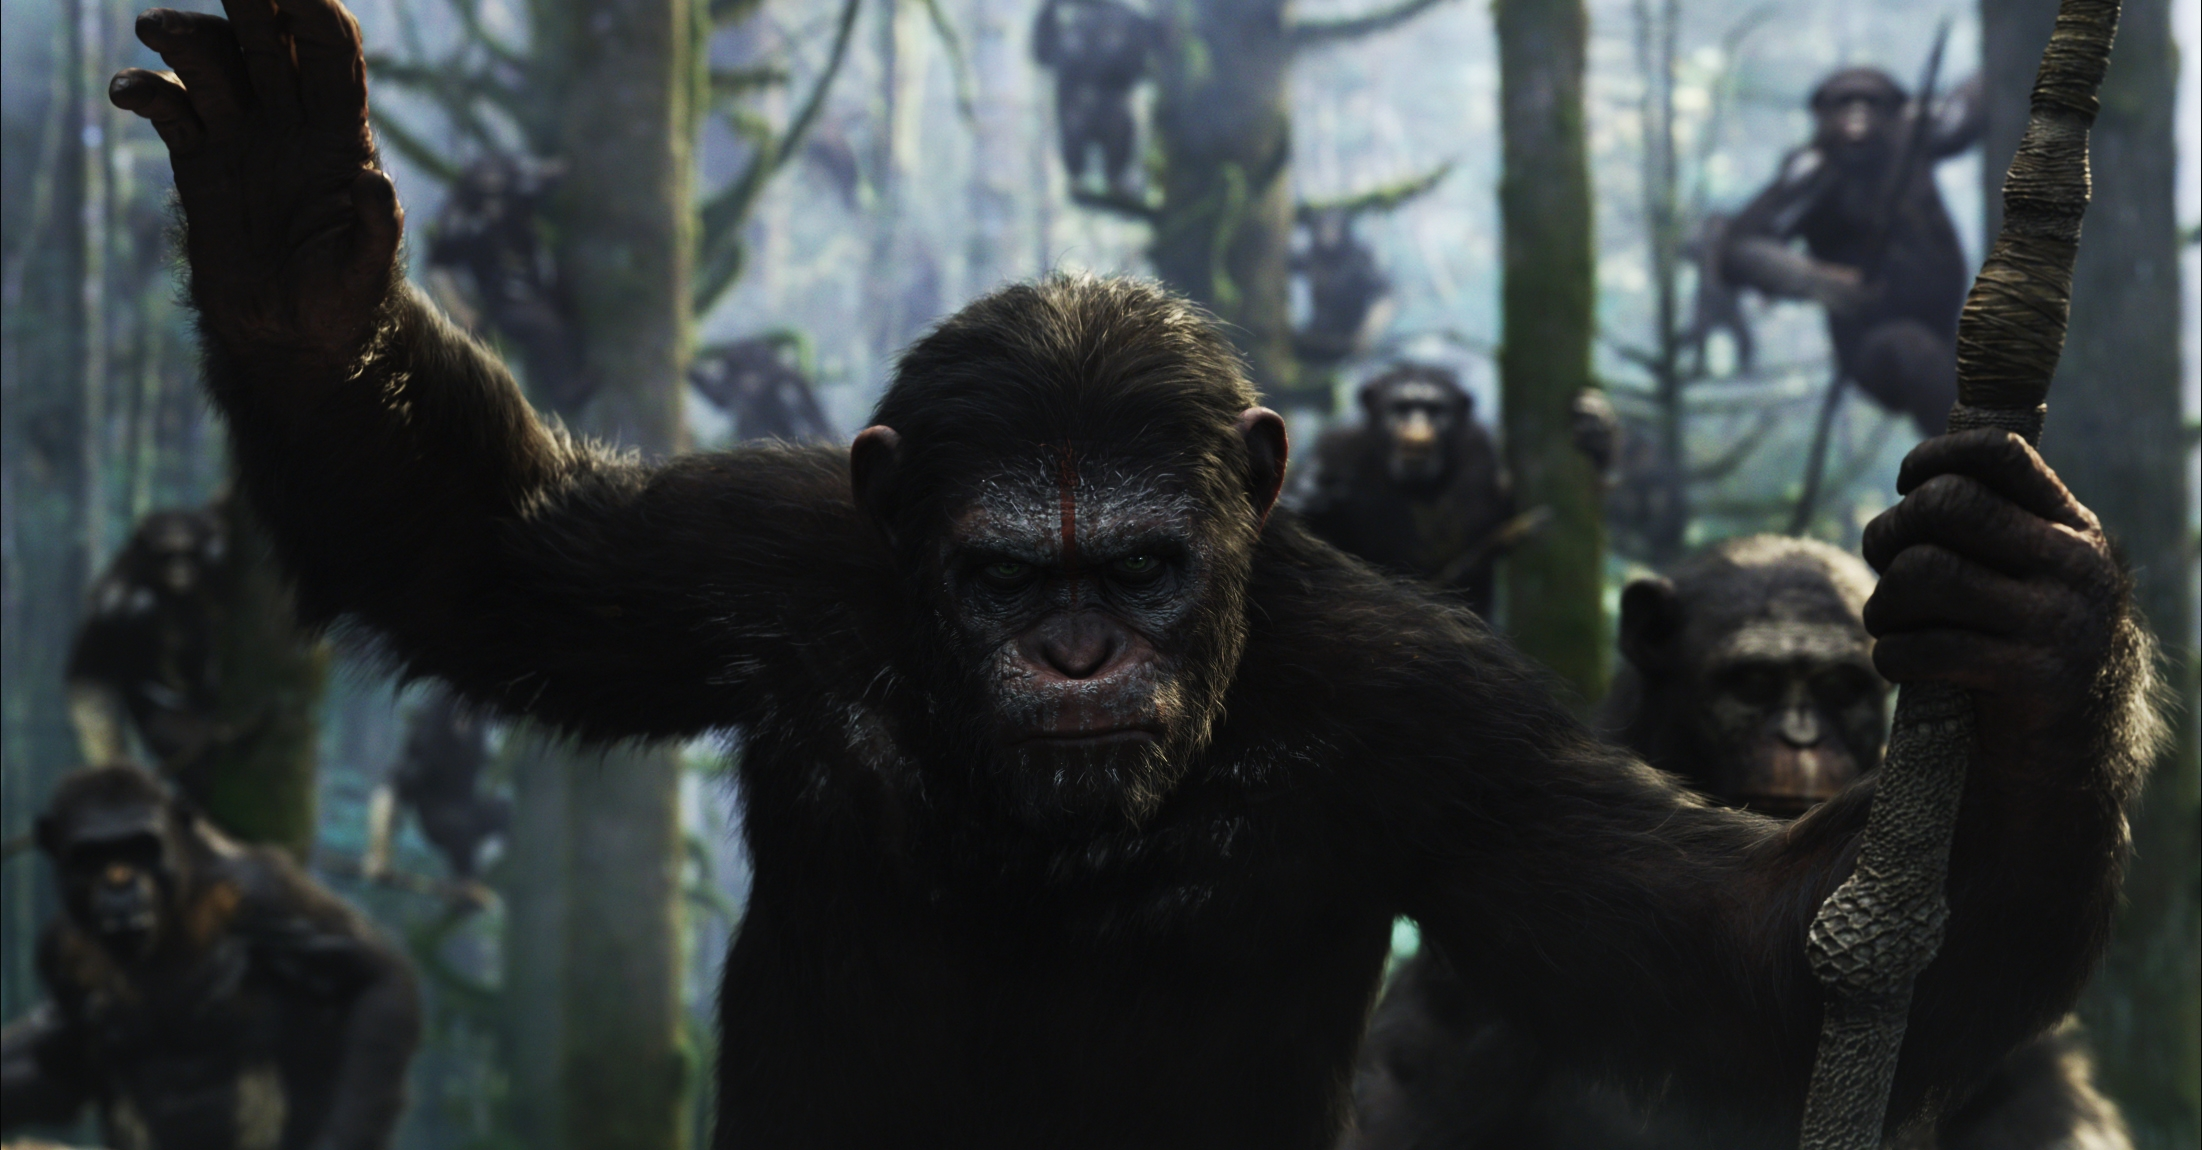 Summer Blockbuster you should avoid - Dawn of the Planet of the Apes - www.scifiempire.net